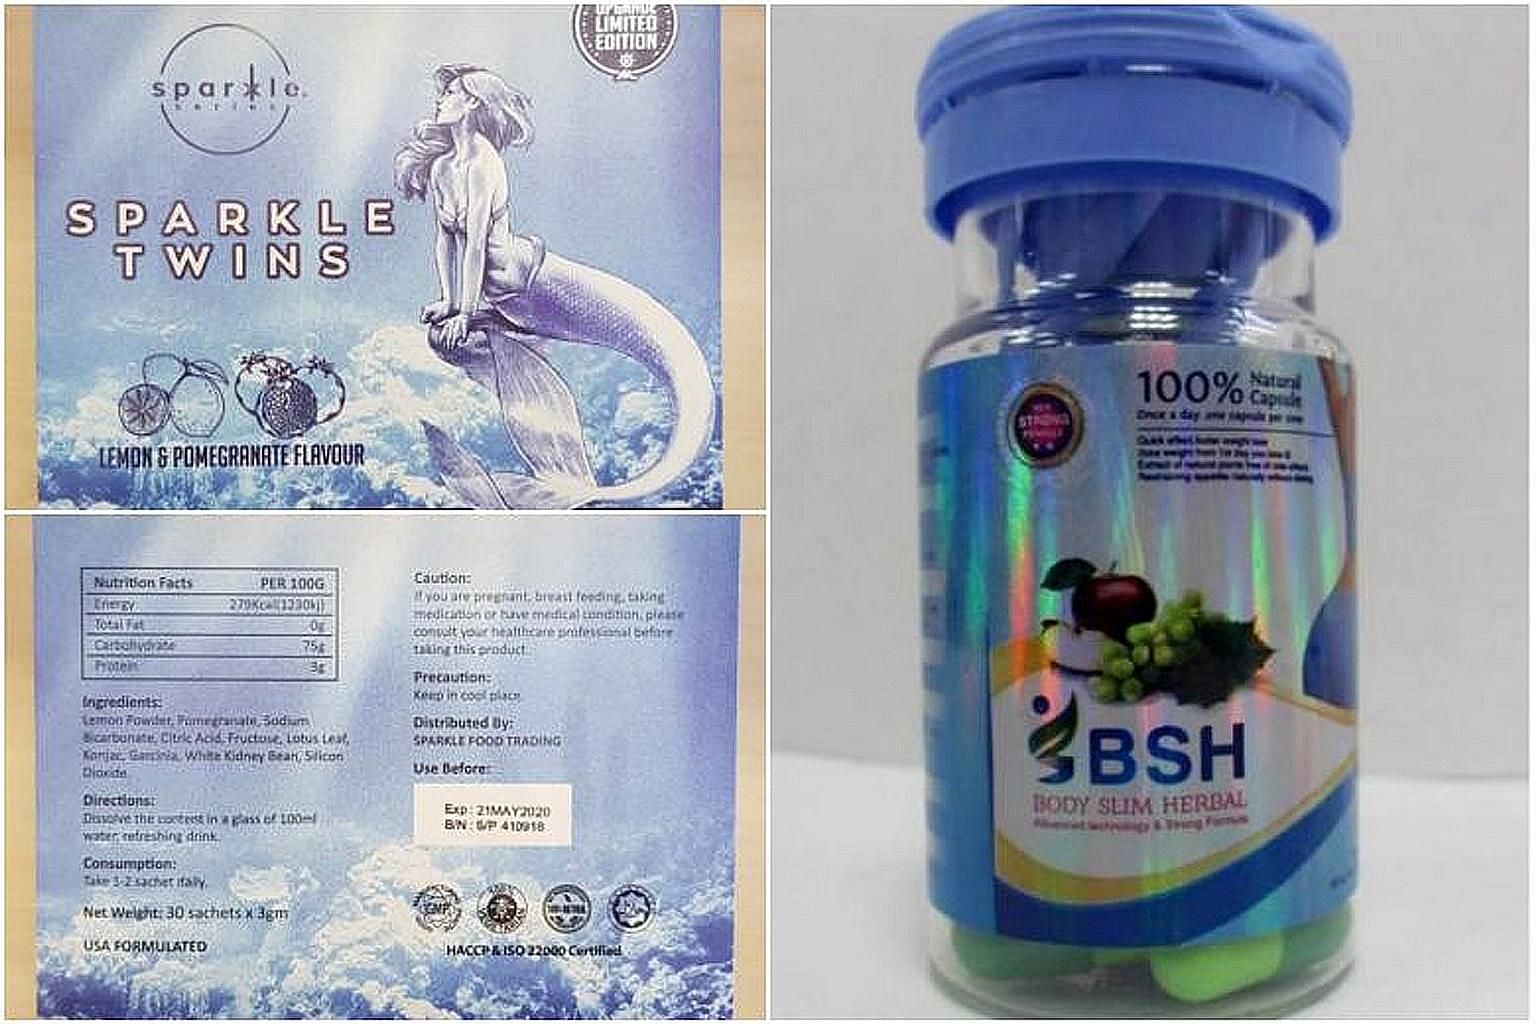 Both Sparkle Twins and Body Slim Herbal, which can be bought online, contain a banned substance that causes serious health risks.